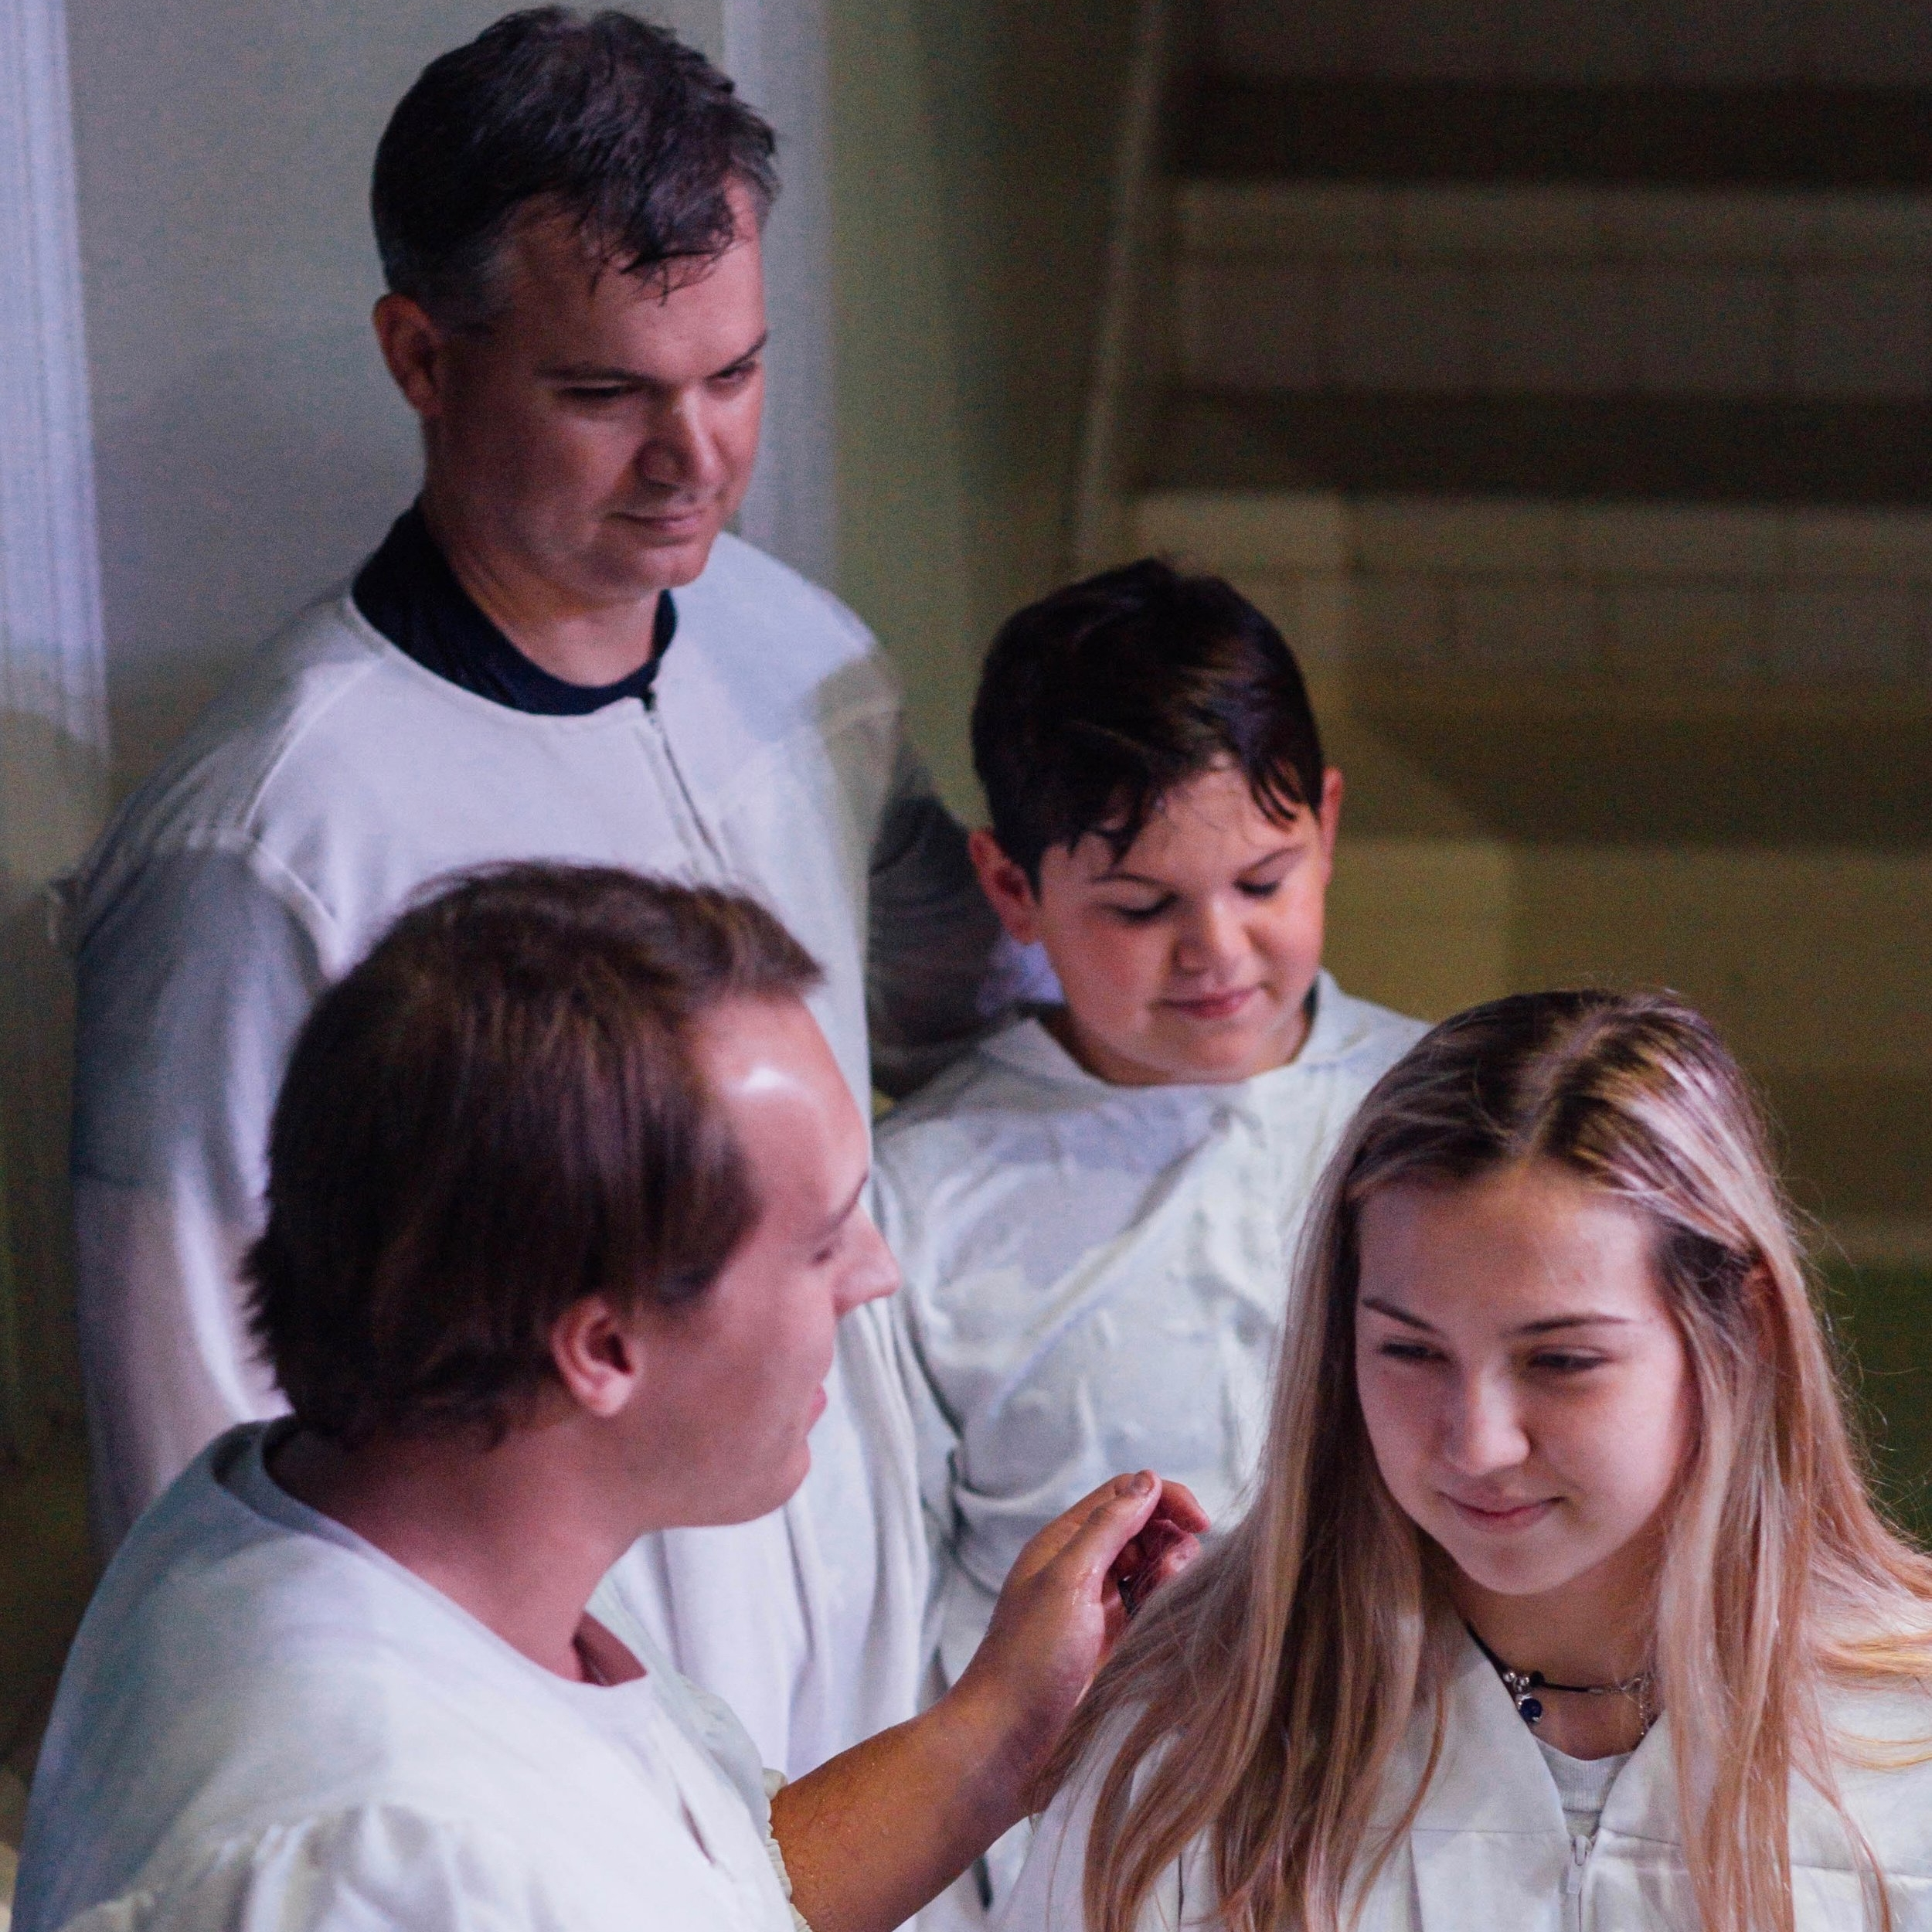 In September, Mark, Owen, and Madeline Phillippi were baptized together. - We are thankful for families and individuals taking their next step in their faith journey.